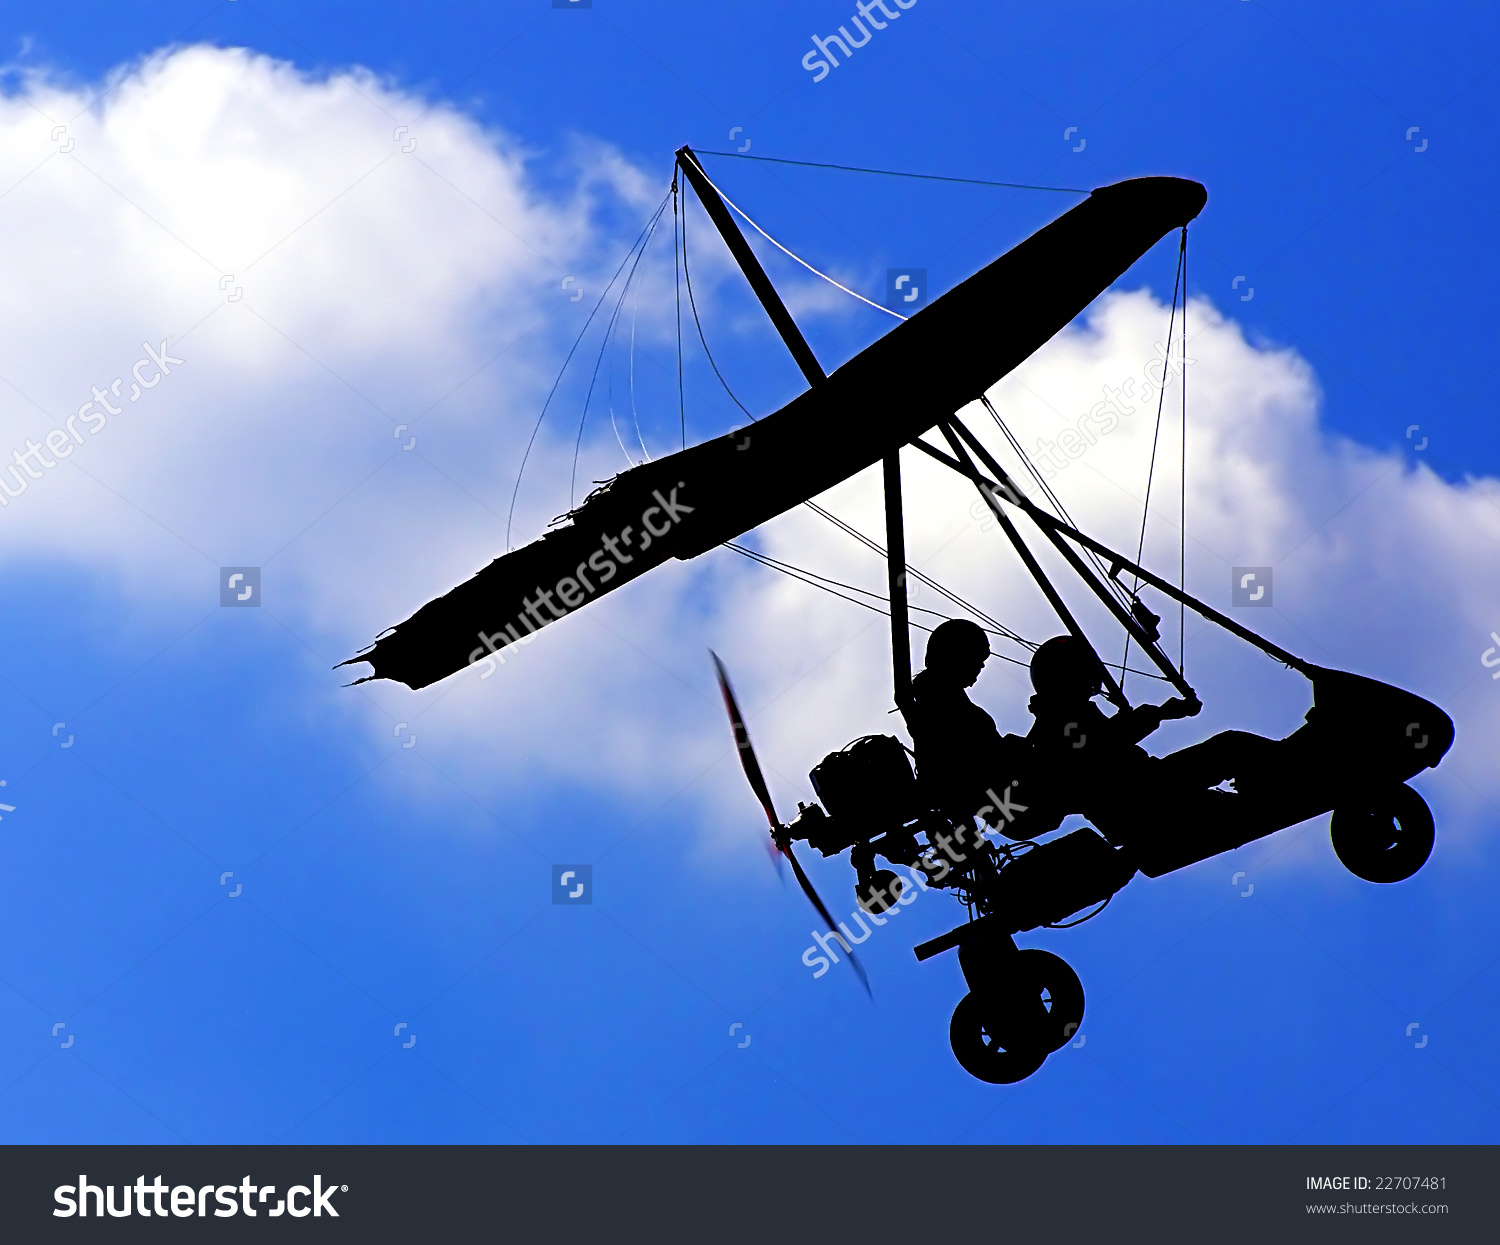 Silhouette Of The Microlight Glider In The Blue Sky Stock Photo.